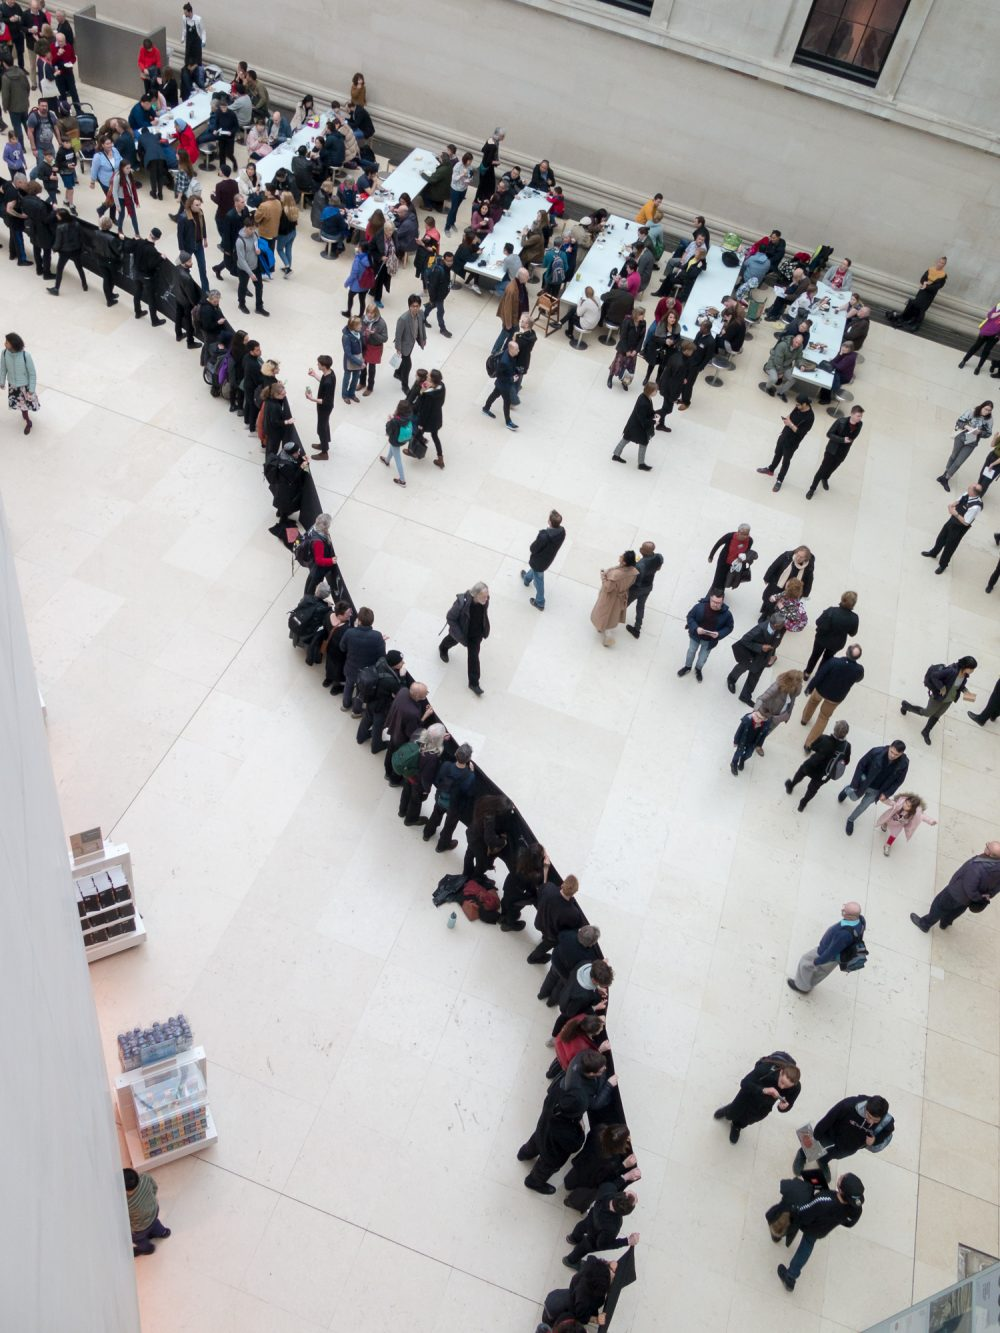 Protestors lined, holding a 200m 'living tapestry' around the rotunda. Photo taken from above